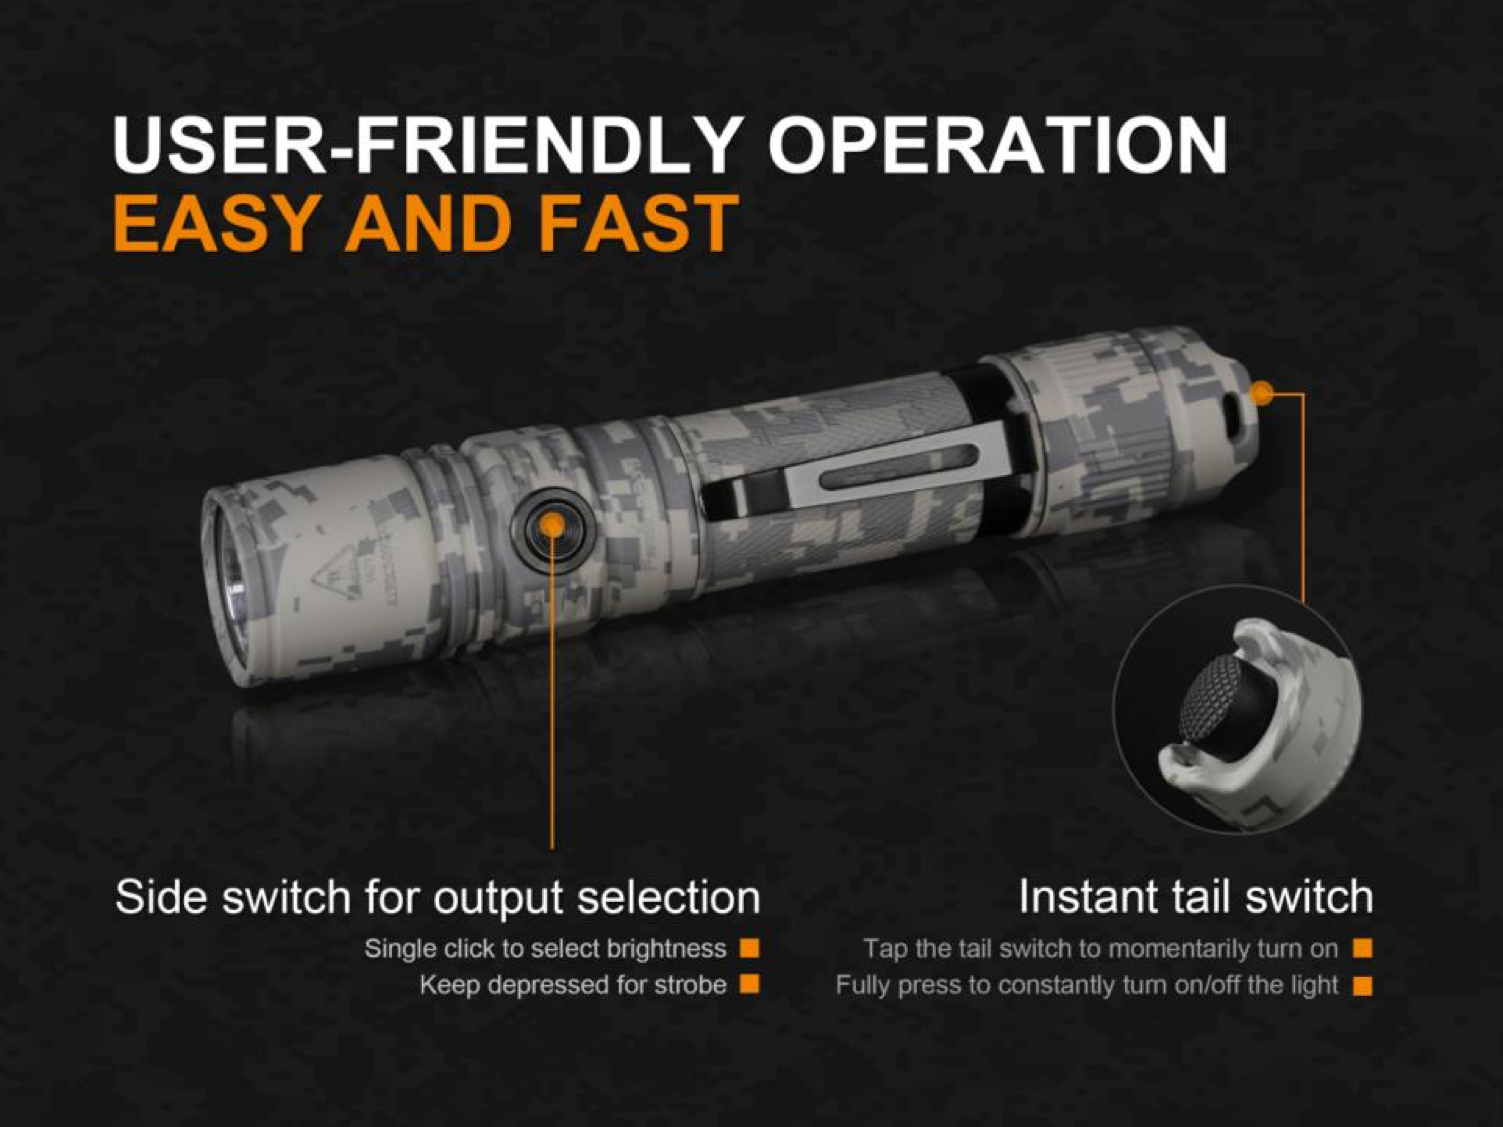 Fenix PD35 V2.0 Tactical LED Flashlight, PD35 Came Edition, High Performance Work Everyday Carry Outdoor LED Torch, 1000 Lumens Flashlight